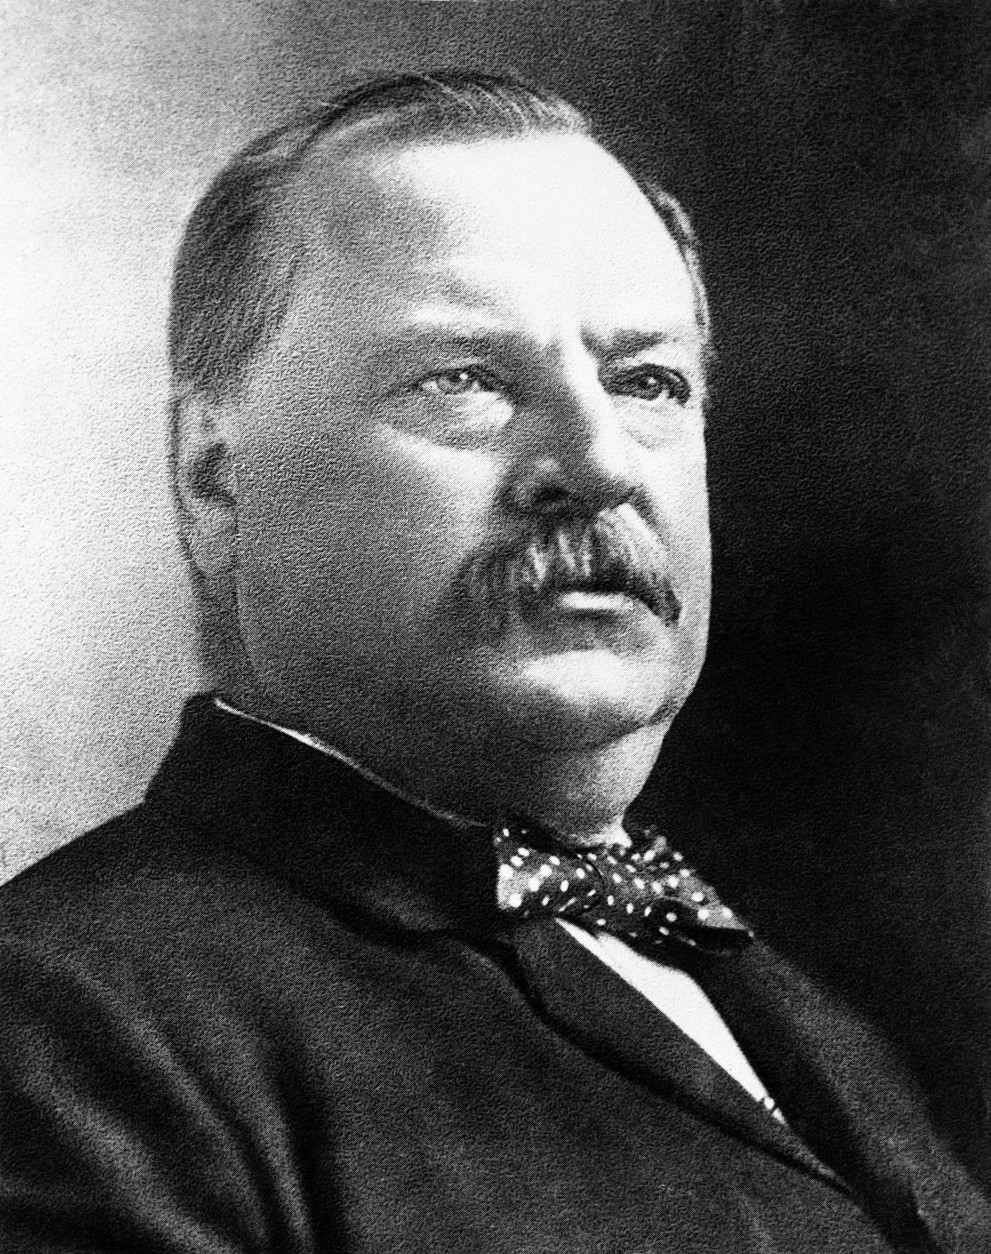 U.S. President Grover Cleveland shown August 9, 1892, 22nd and 24th president, 1885-1889 and 1893-1897. (AP Photo)